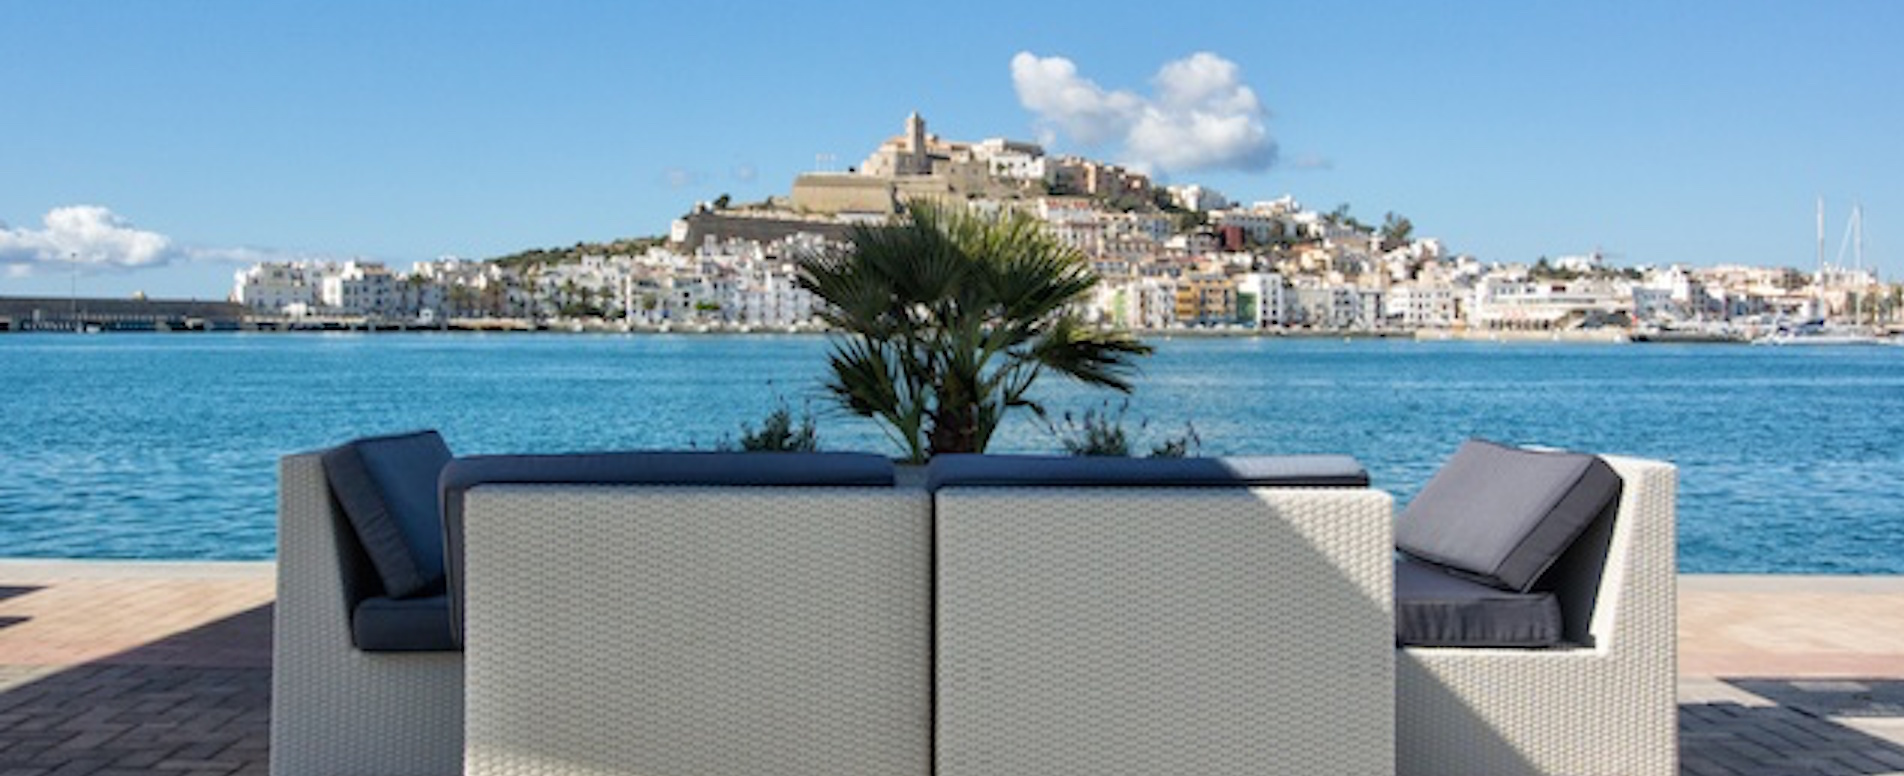 Lunch or dine in style - Ibiza